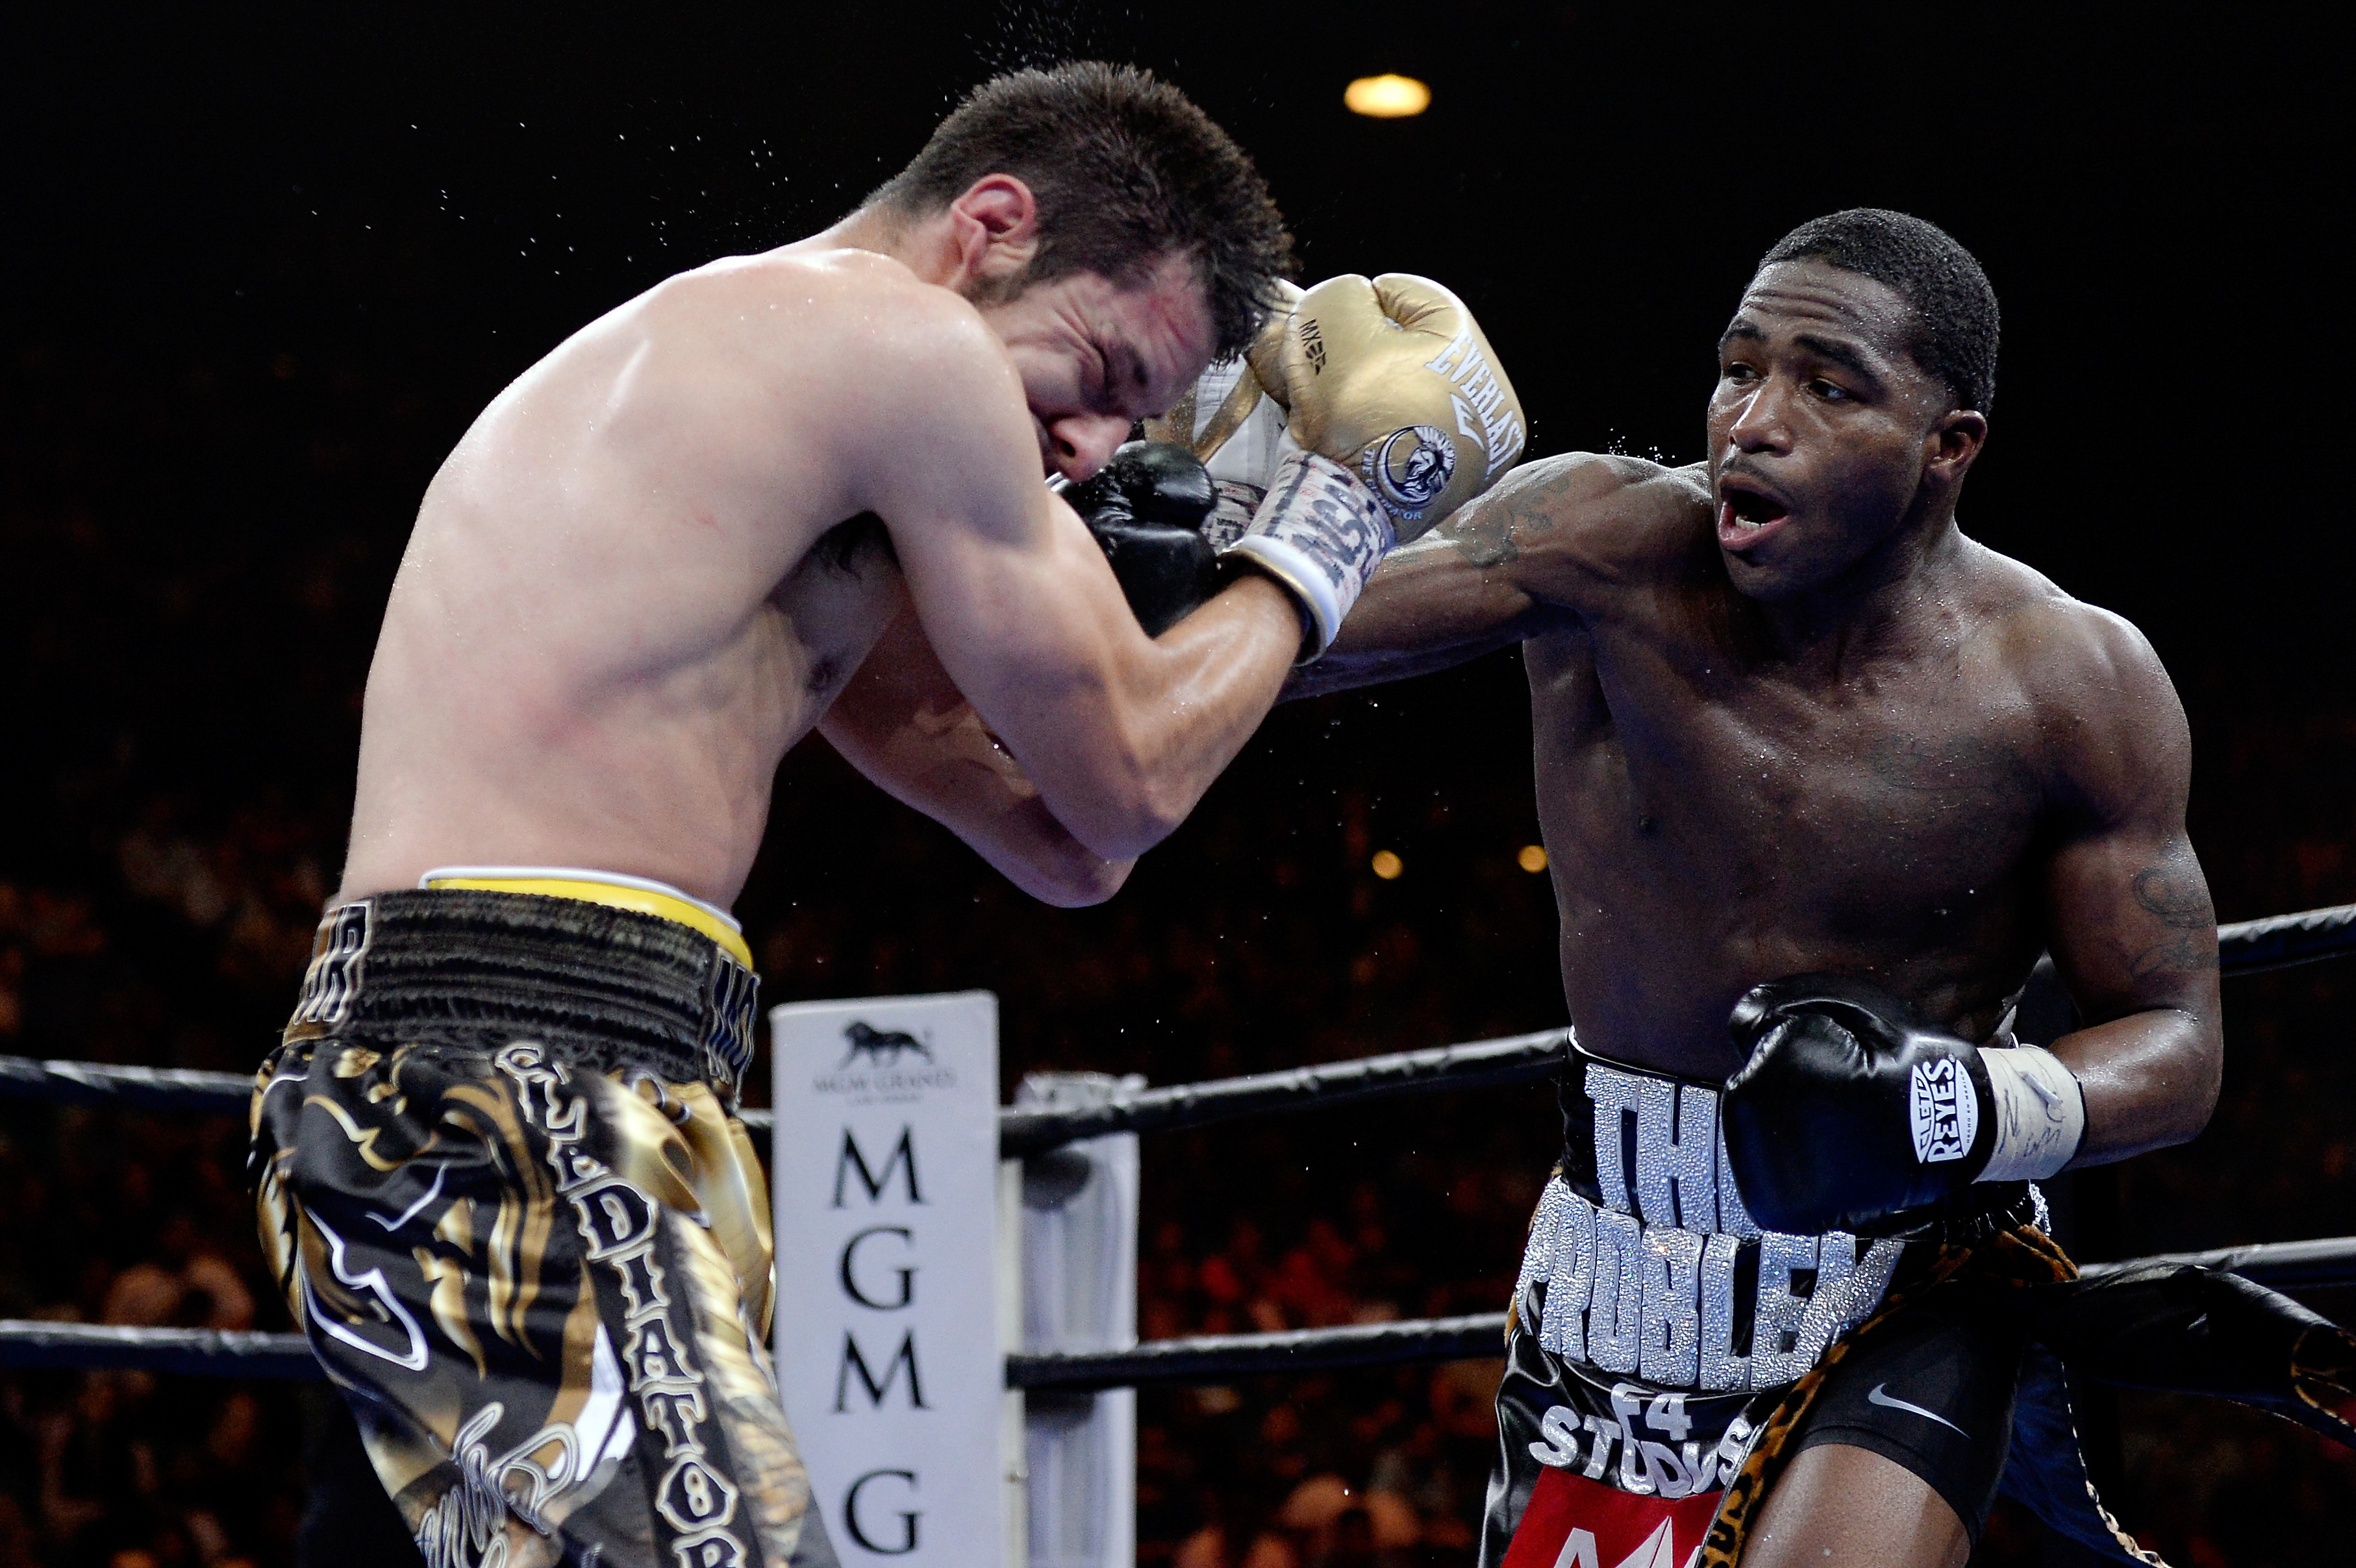 LAS VEGAS, NV - MARCH 07:  Adrien Broner punches John Molina Jr. during a Premier Boxing Champions bout in the MGM Grand Garden Arena on March 7, 2015 in Las Vegas, Nevada.  (Photo by Harry How/Getty Images)